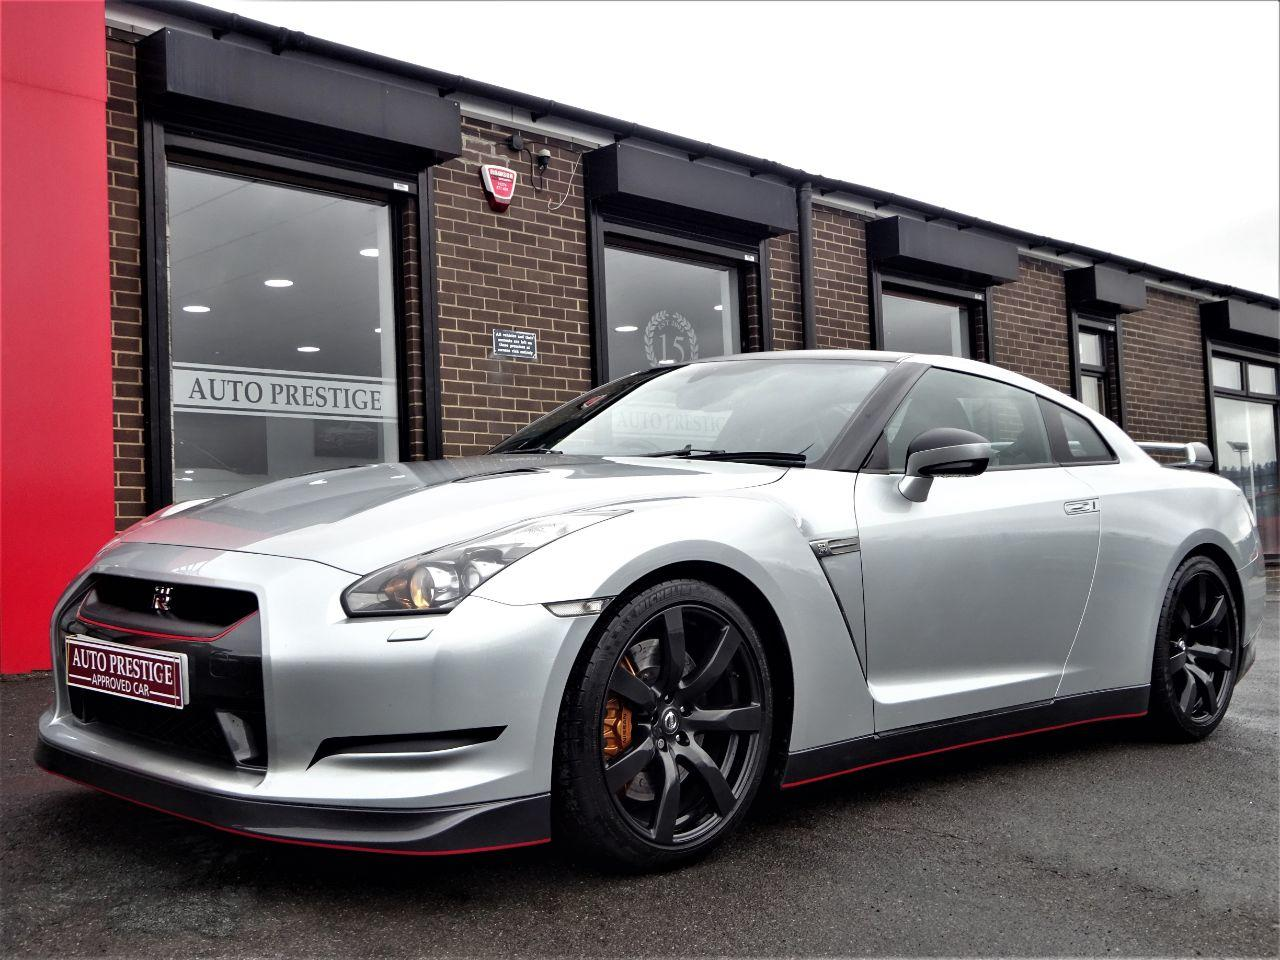 Nissan GT-R 3.8 GT-R PREMIUM EDITION S-A STAGE 1 WITH NISMO DETAILING PACK AND BLACK PACK 60 REG Coupe Petrol Silver at Autoprestige Bradford